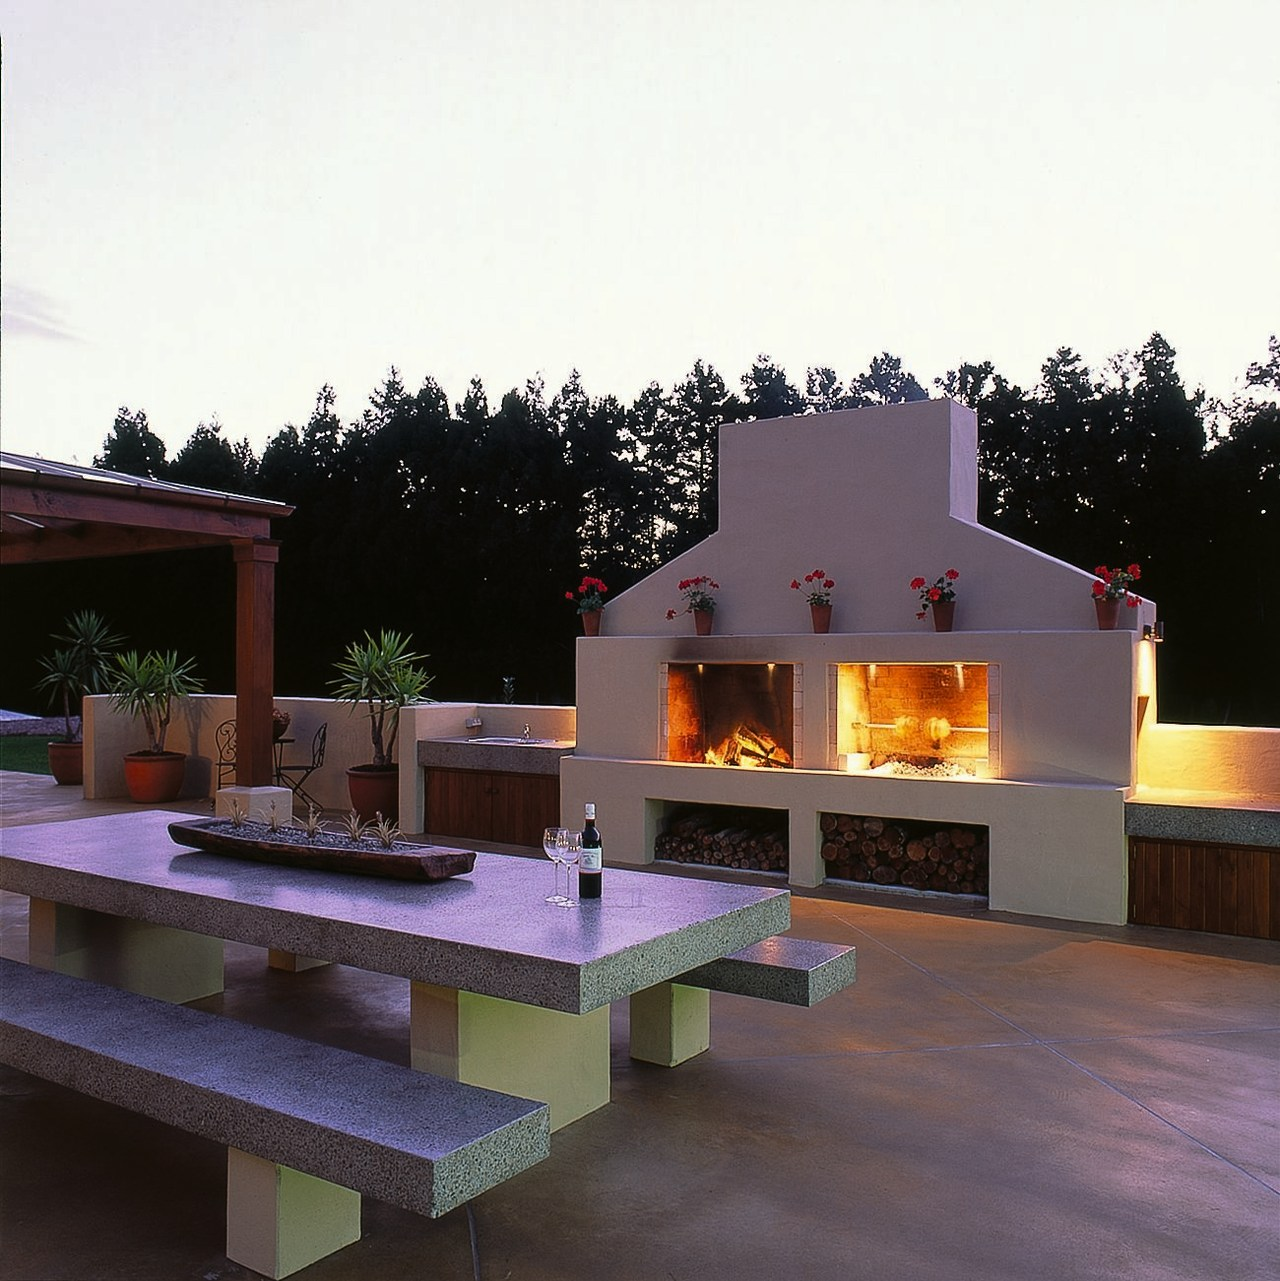 A view of a patio and fireplace of backyard, fireplace, home, house, outdoor structure, patio, real estate, residential area, roof, white, black